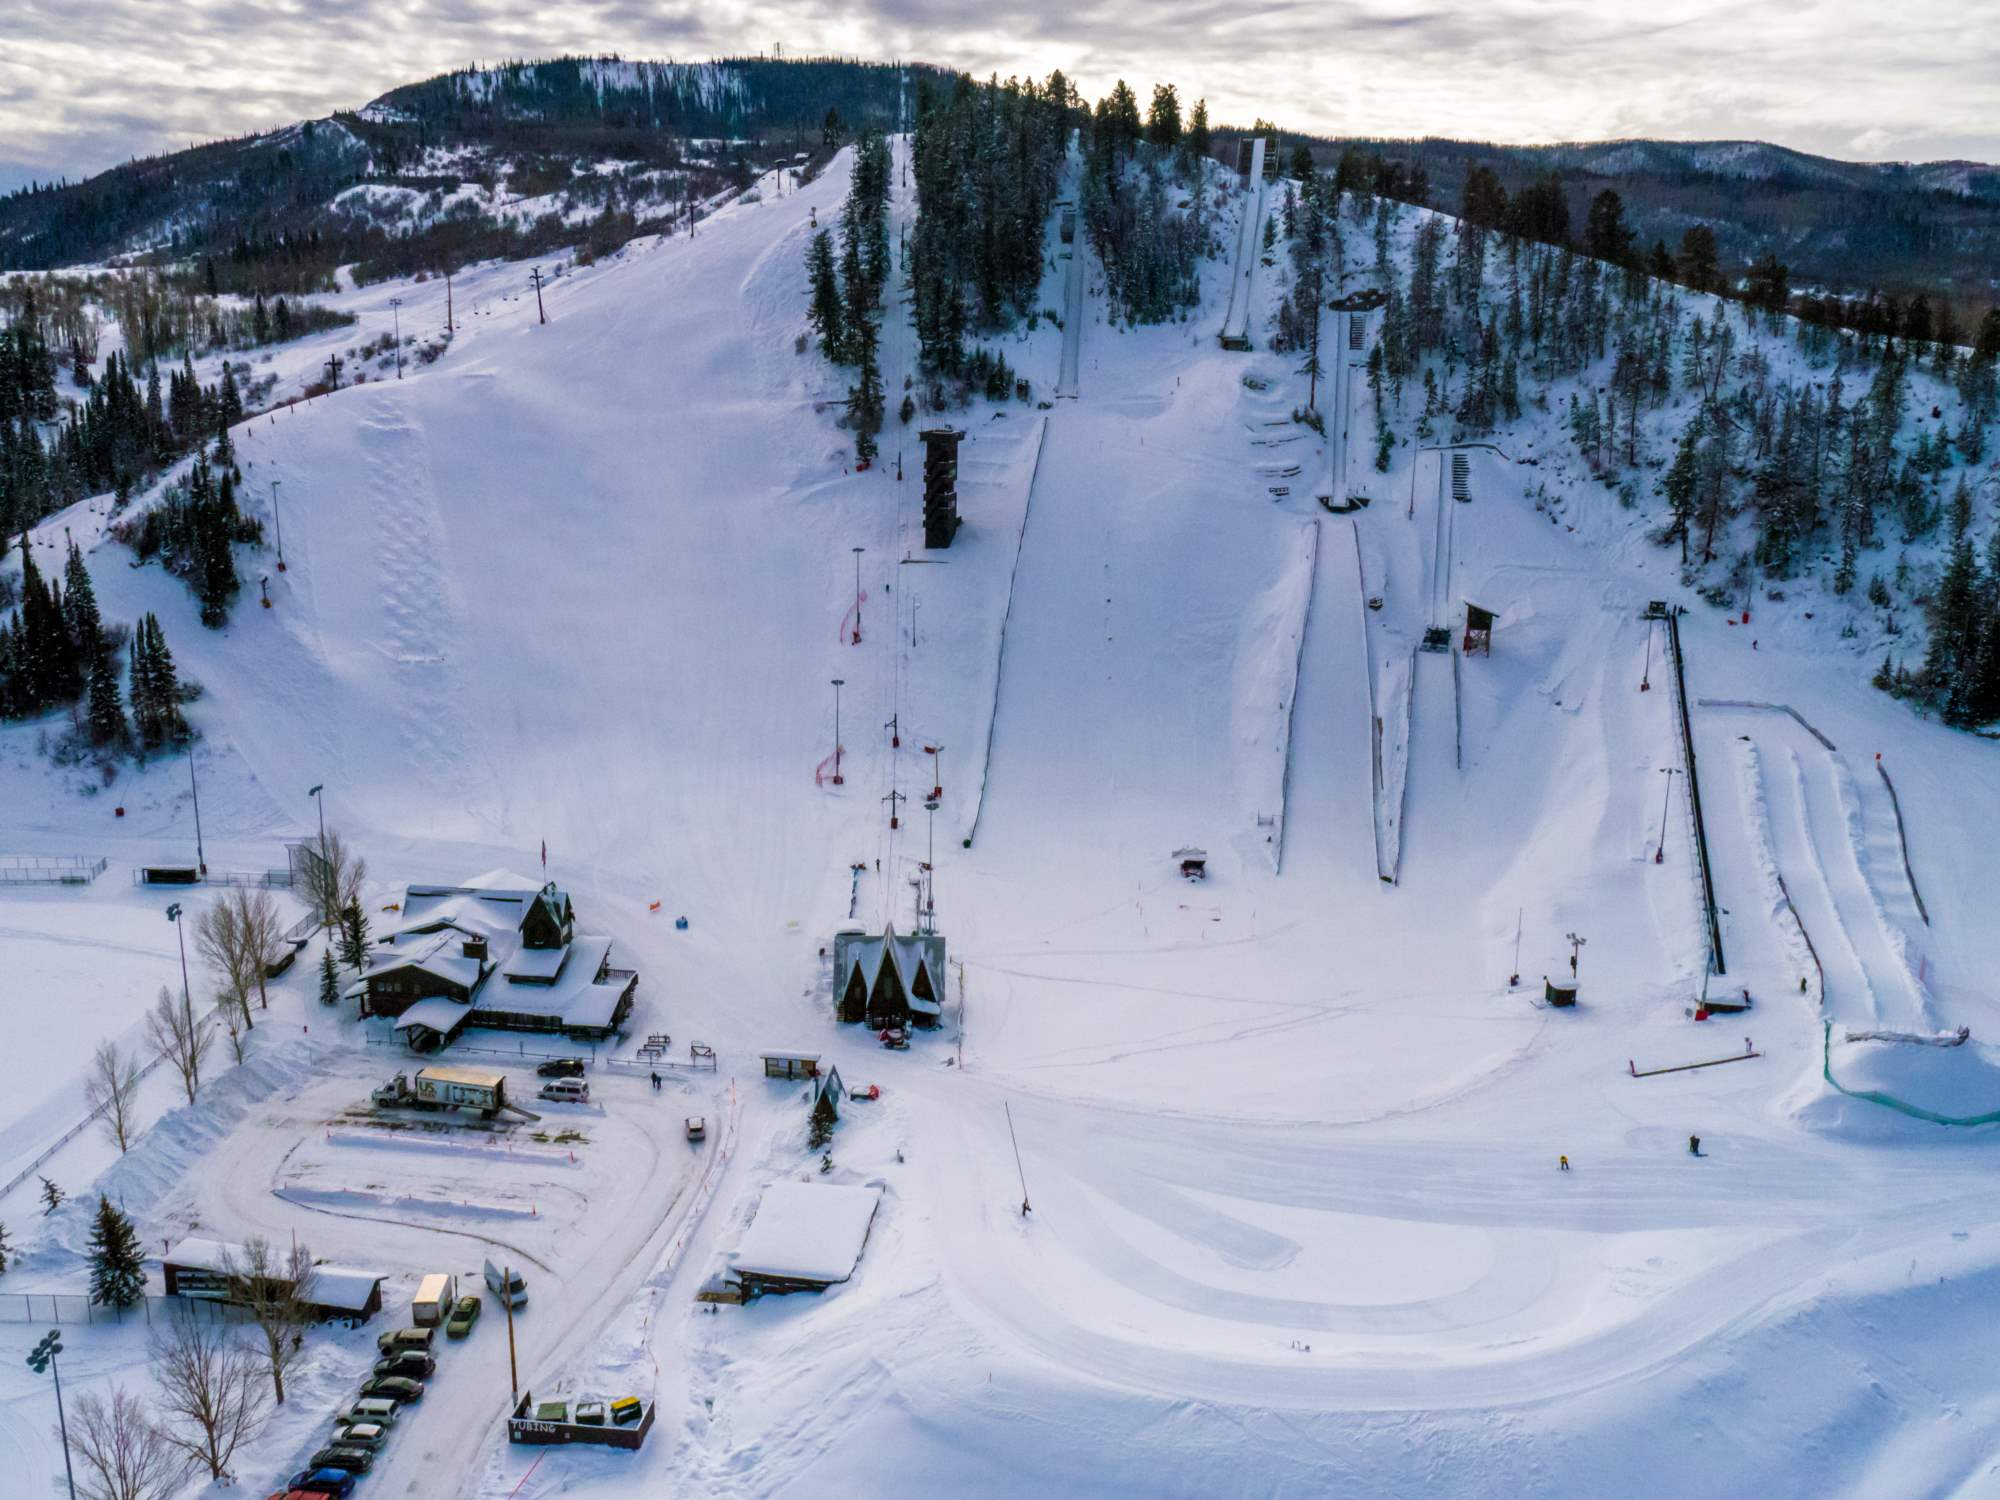 Howelson Hill - The Oldest Continuously Operated Ski Are in the Country